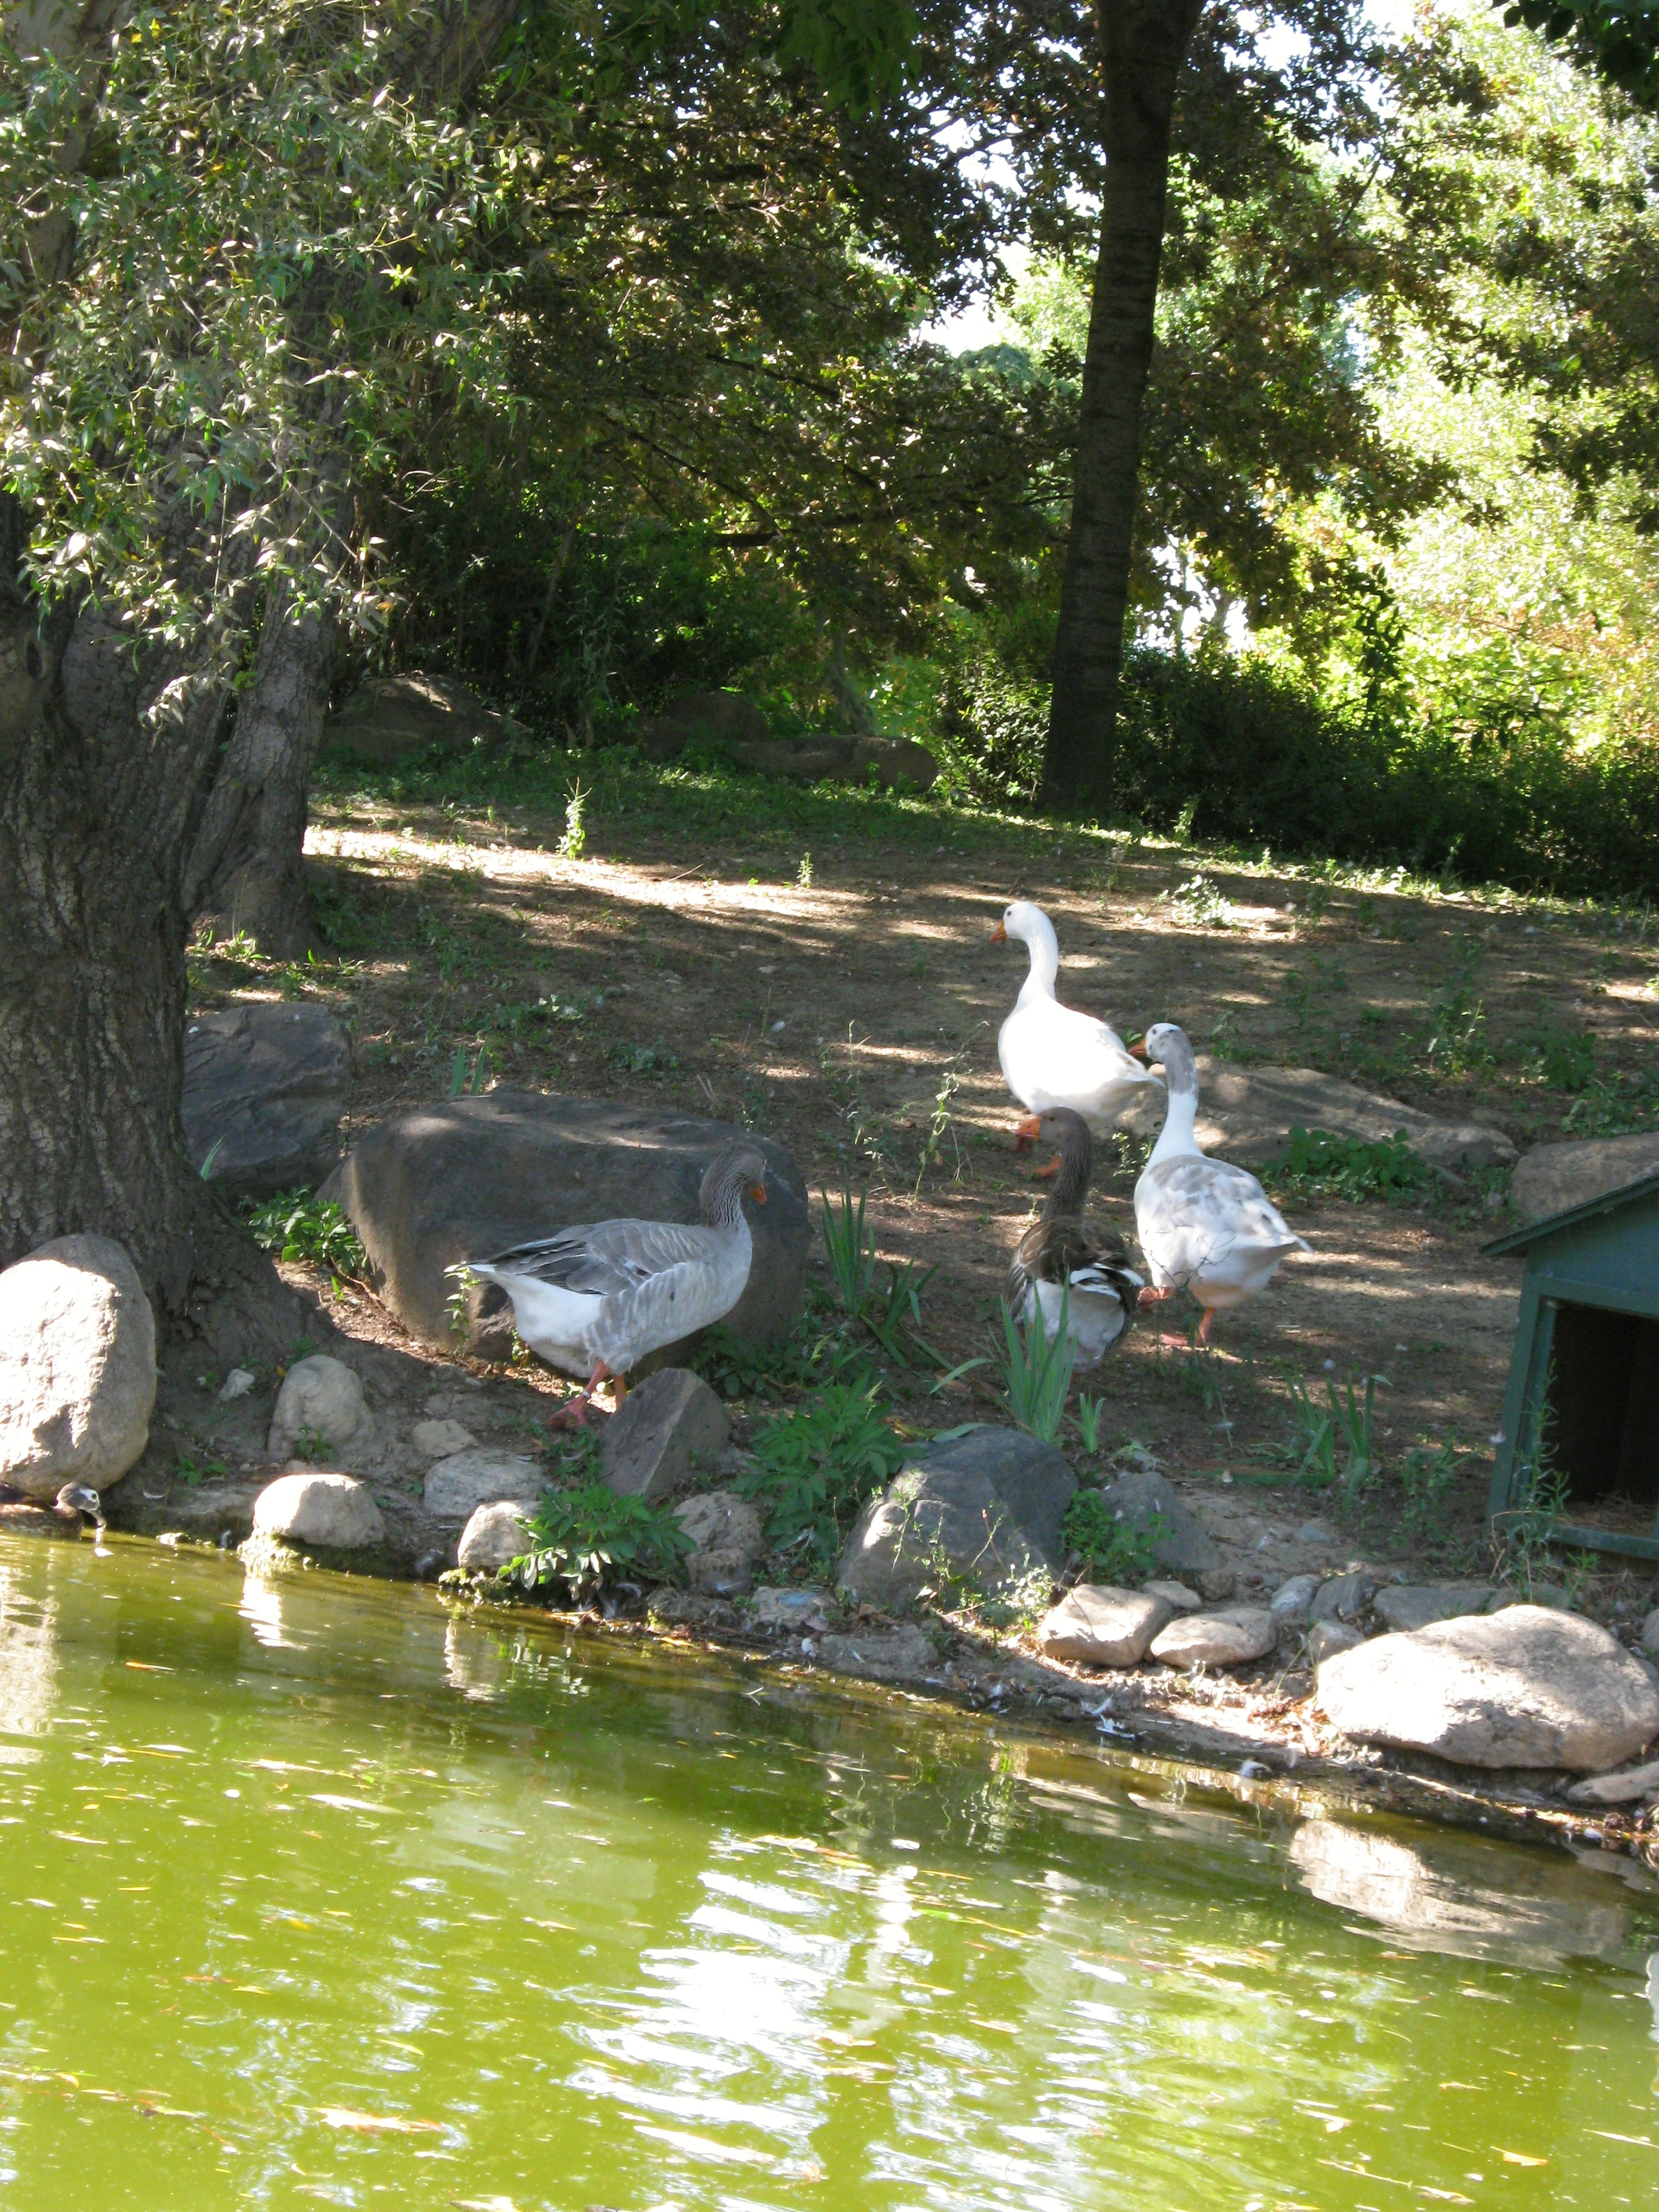 Geese, Animals, Green, Trees, Tree, HQ Photo